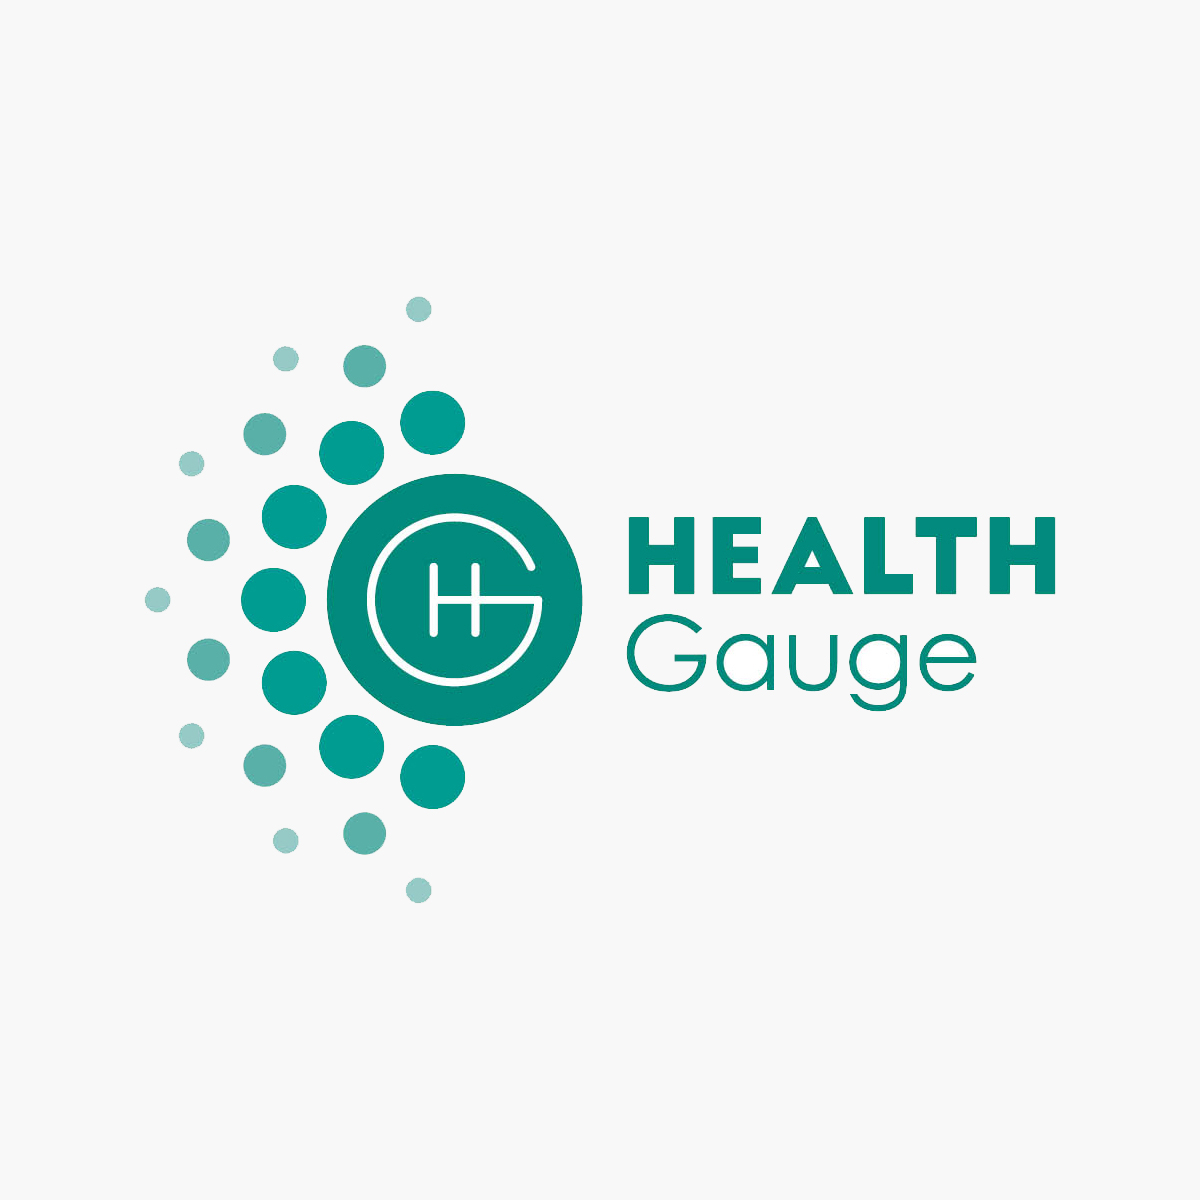 Health Gauge Logo